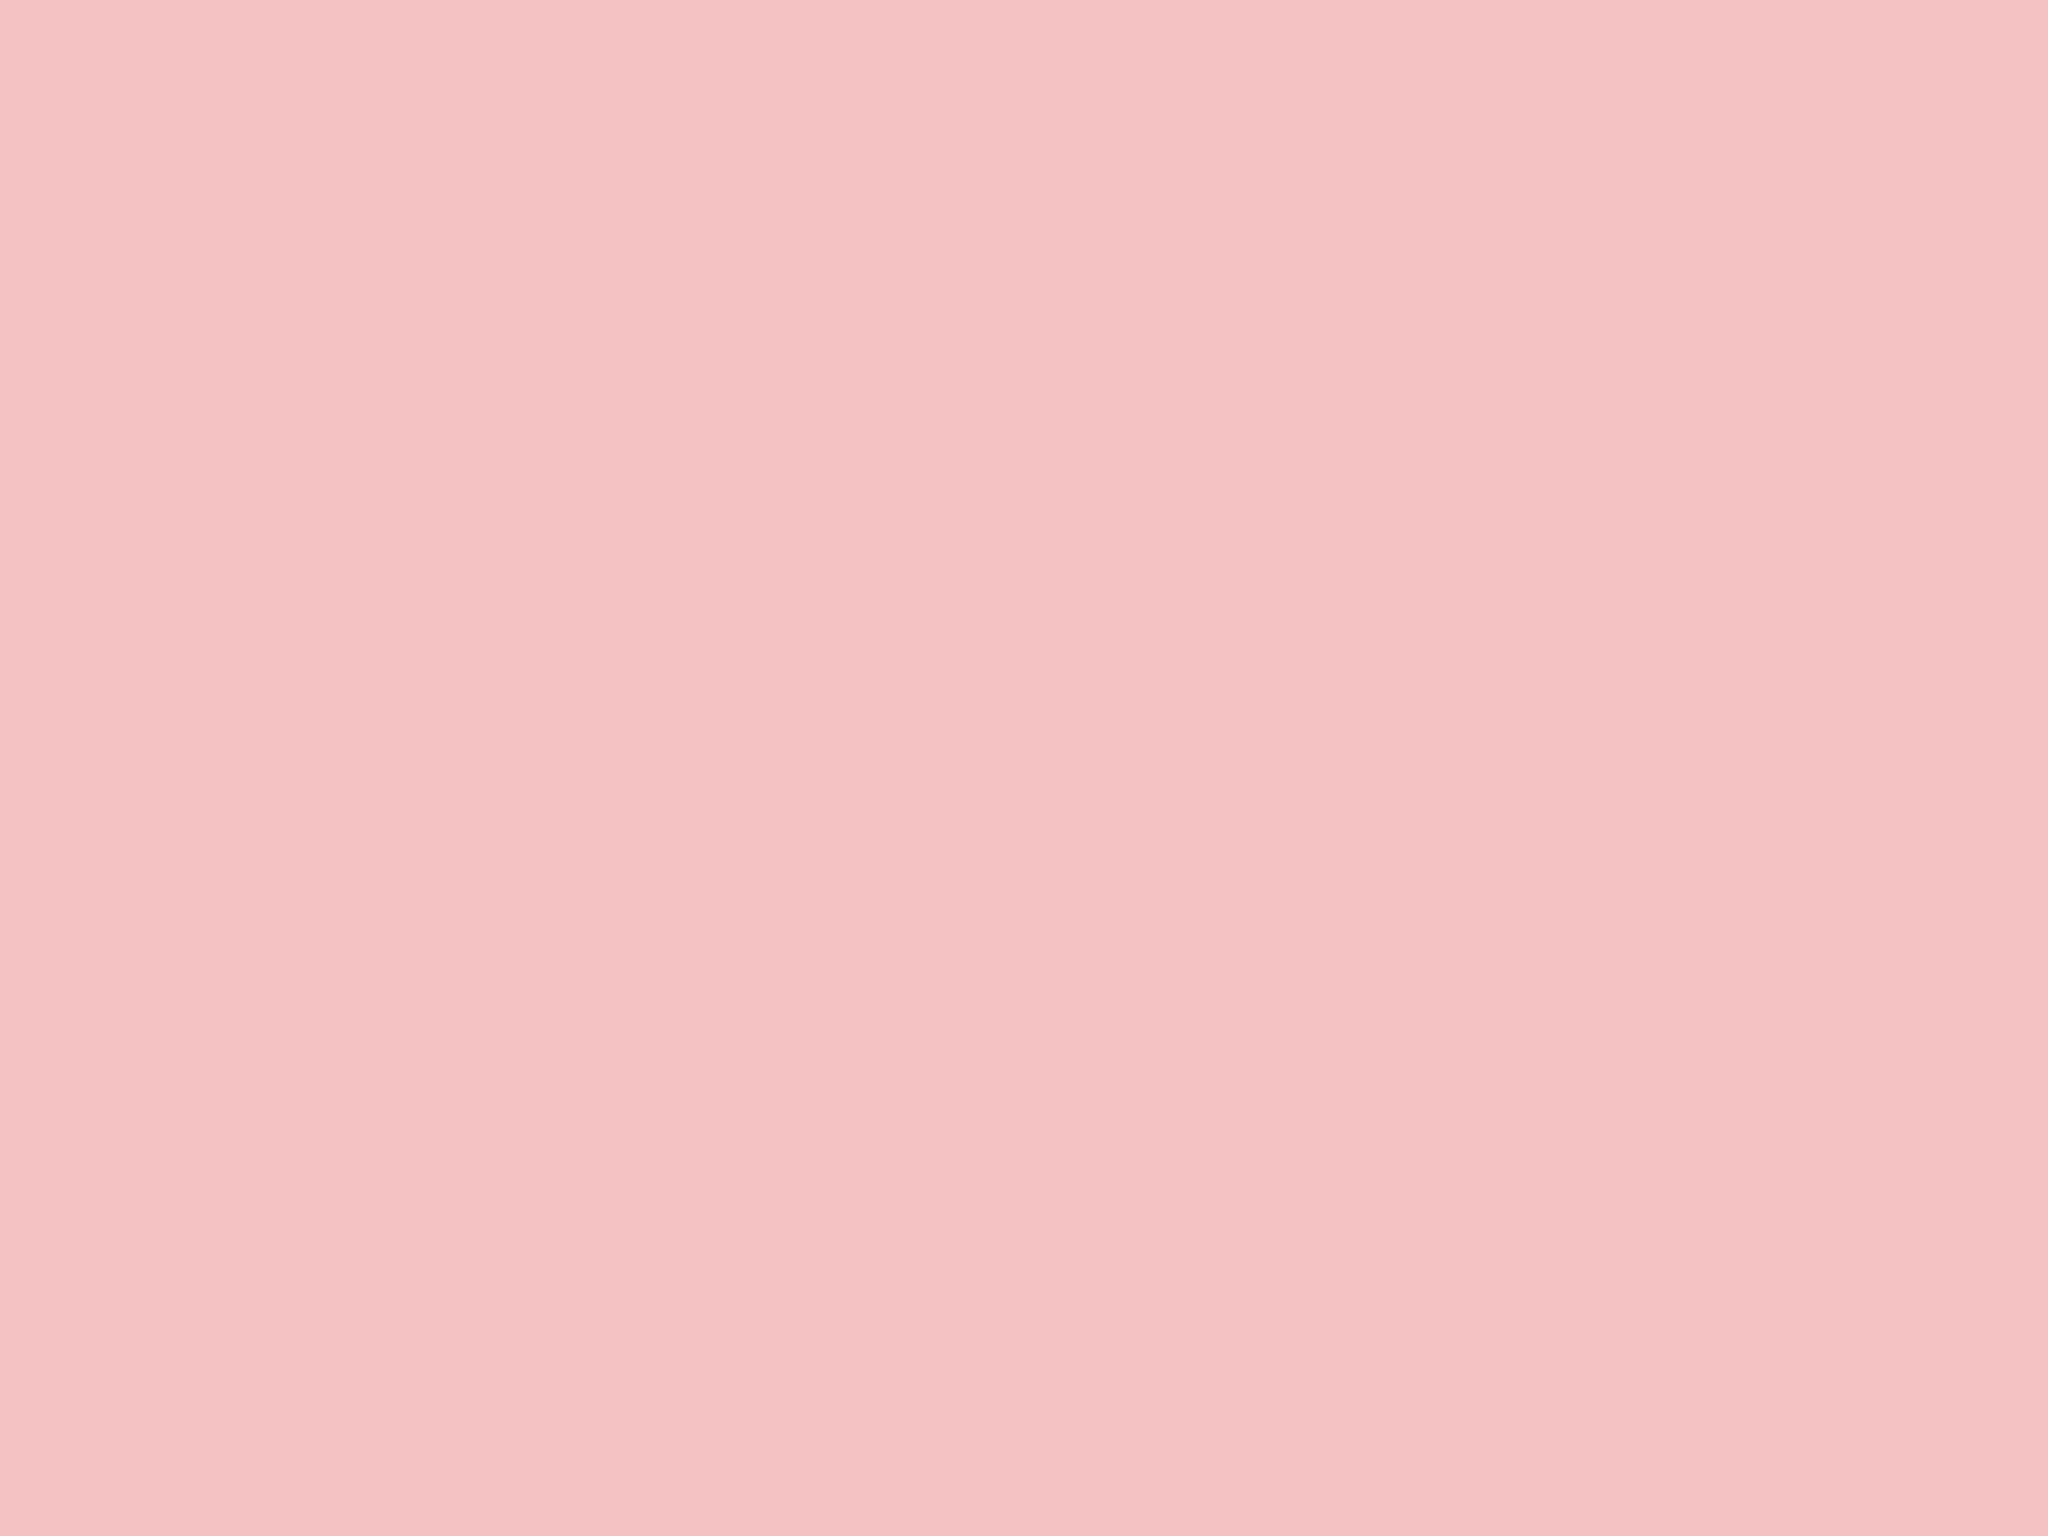 2048x1536 Baby Pink Solid Color Background